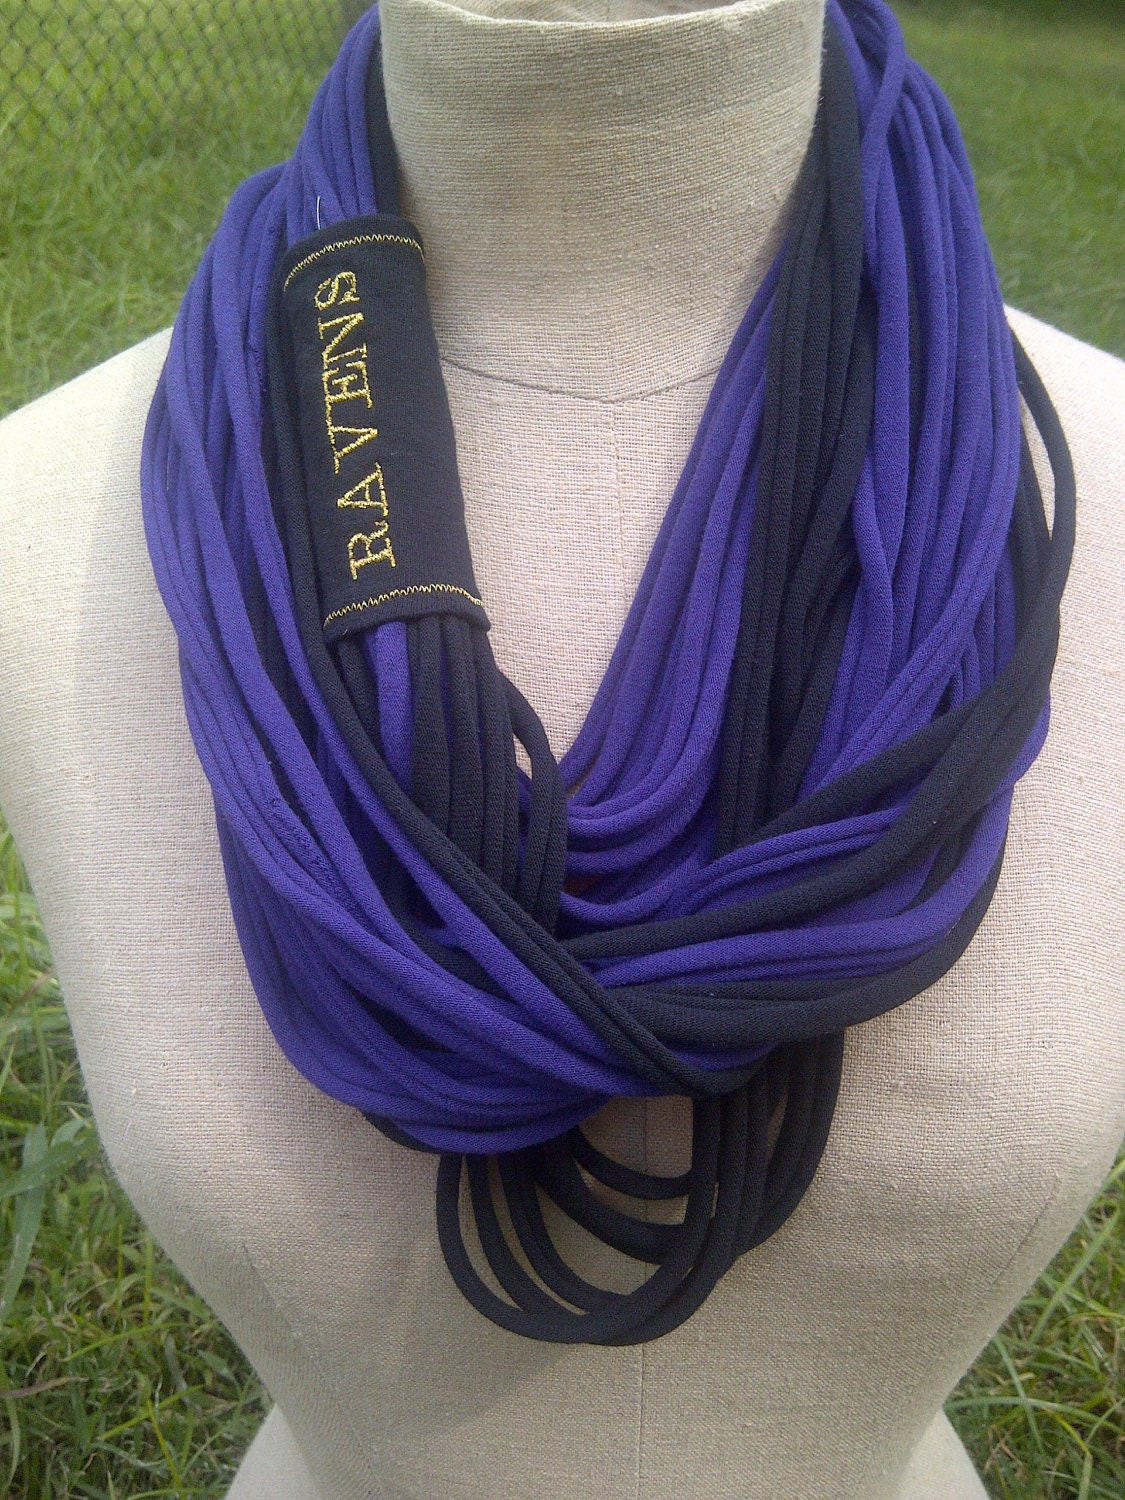 items similar to baltimore ravens infinity scarf on etsy